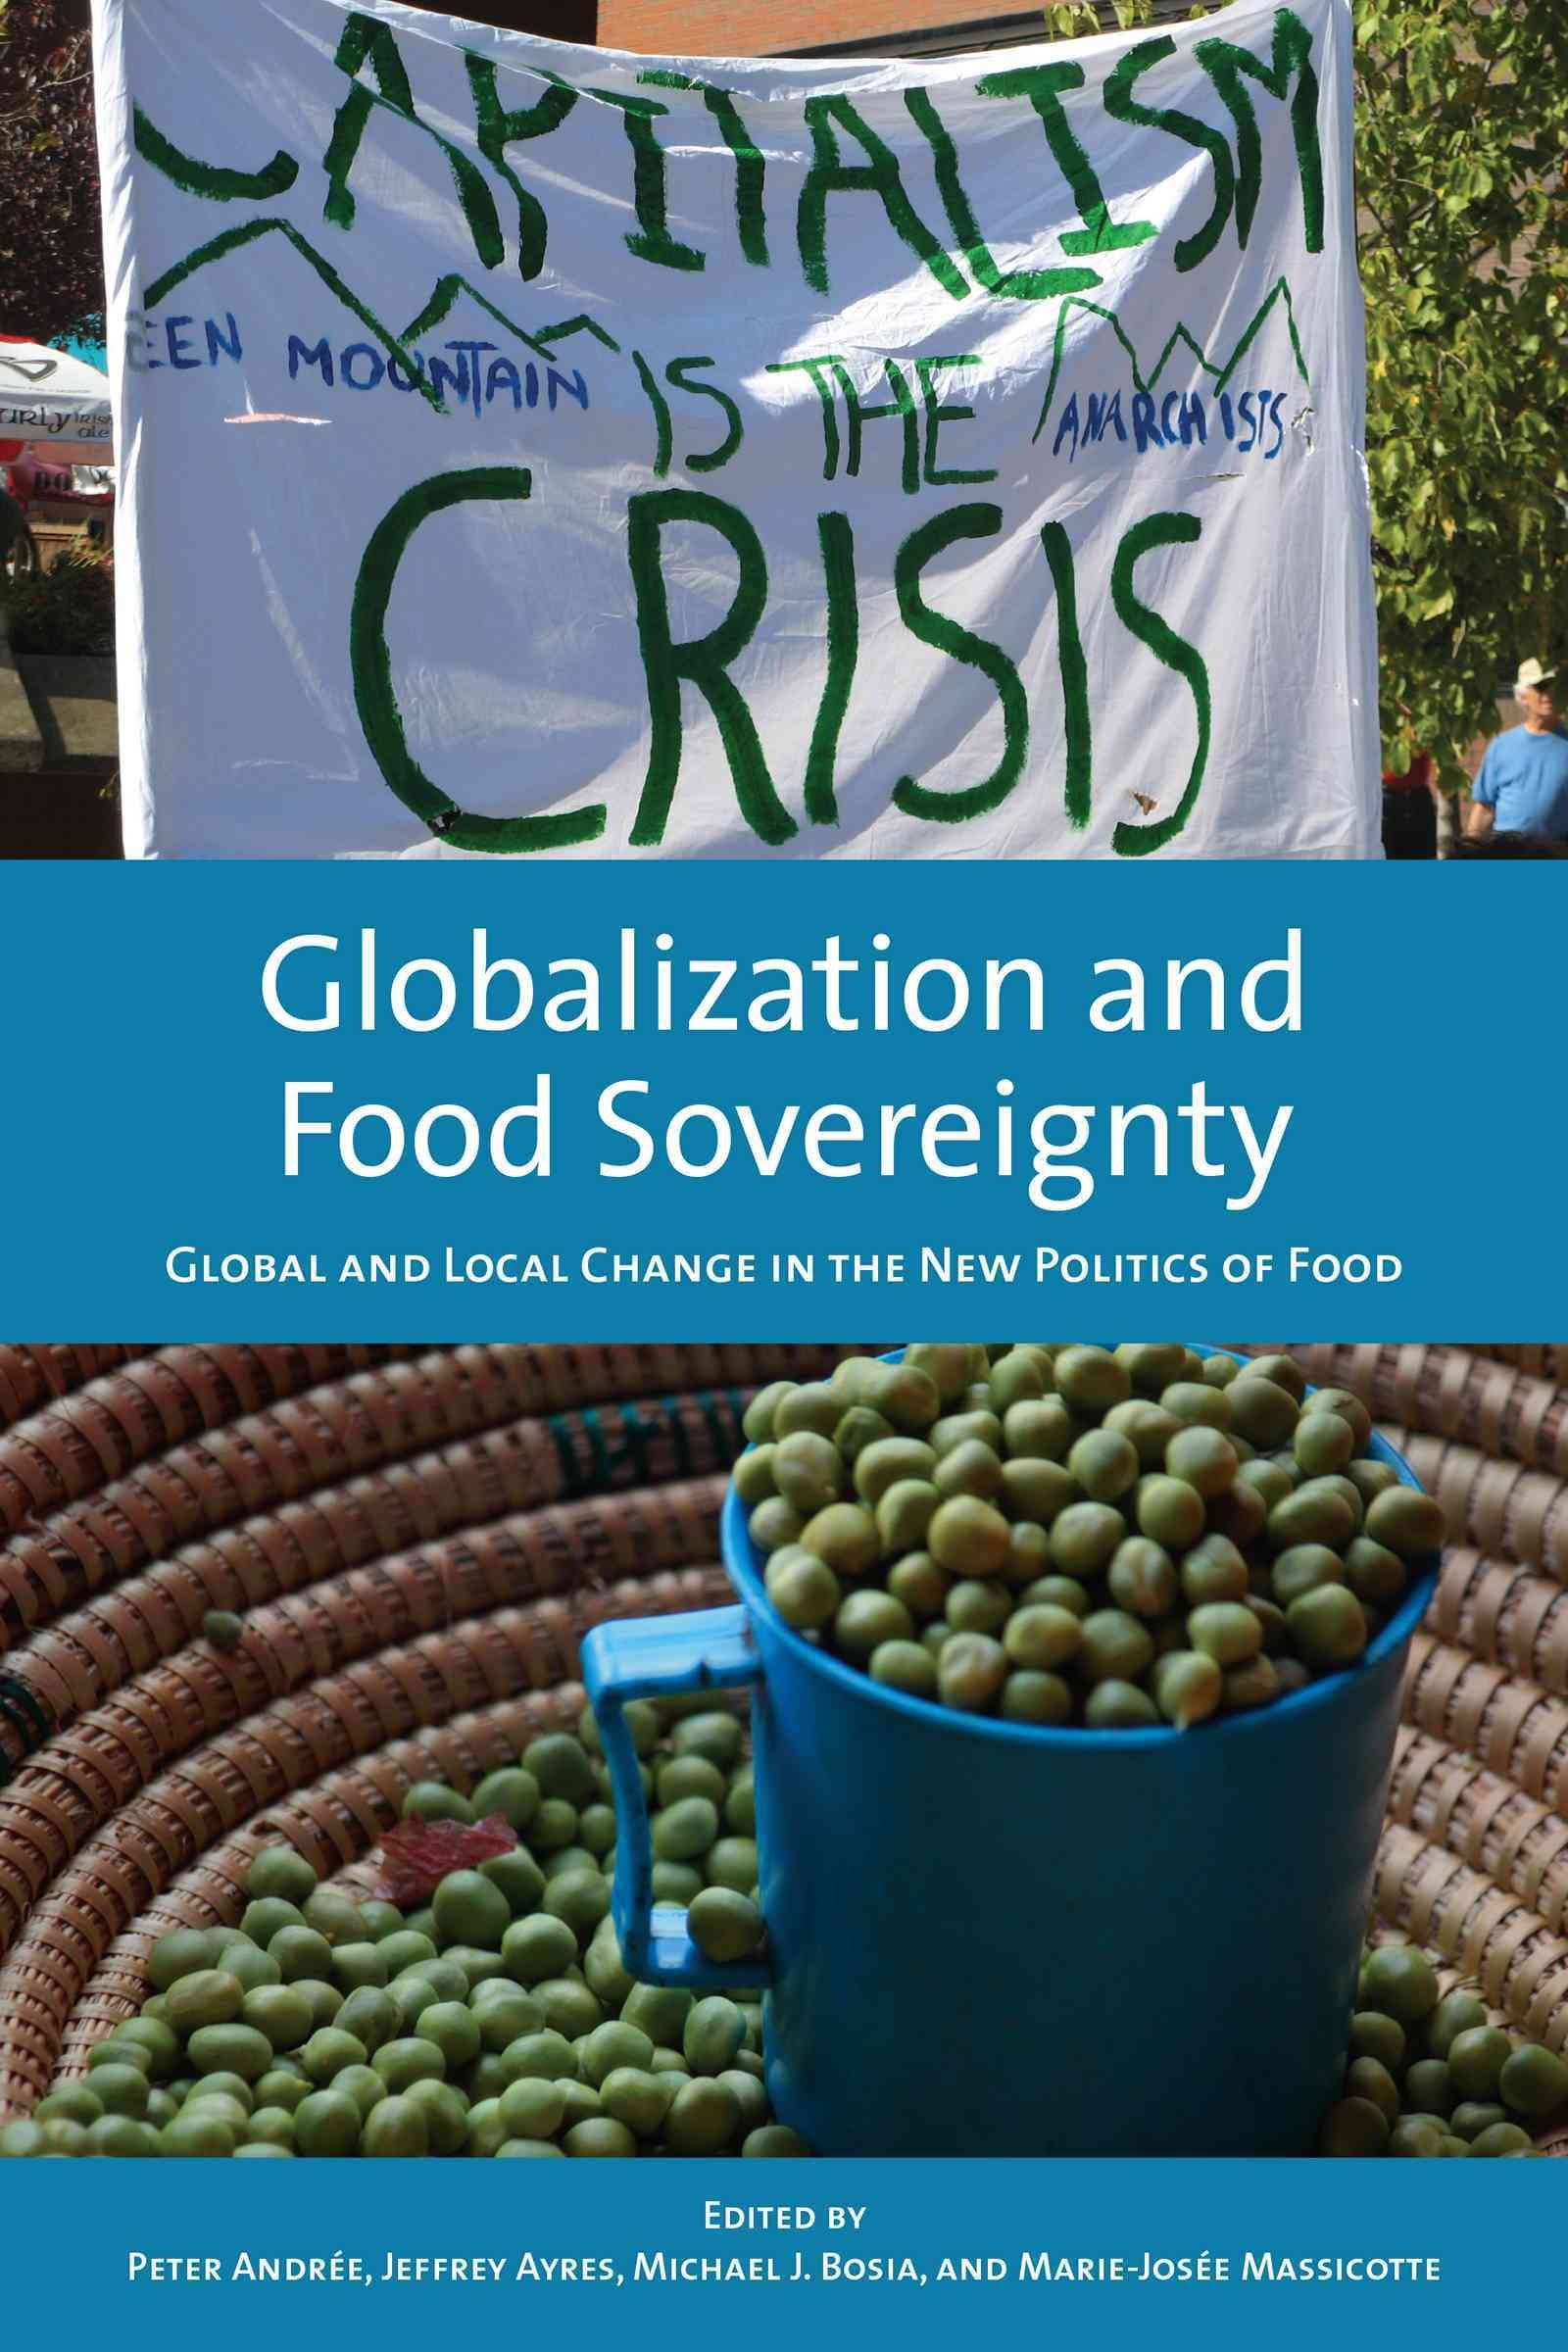 geopolitics of food Geopolitics of food: implications for acp briefing no 21 resources on issues related to geopolitics of food1 brussels, 2nd february 2011 compiled by isolina boto (head of.